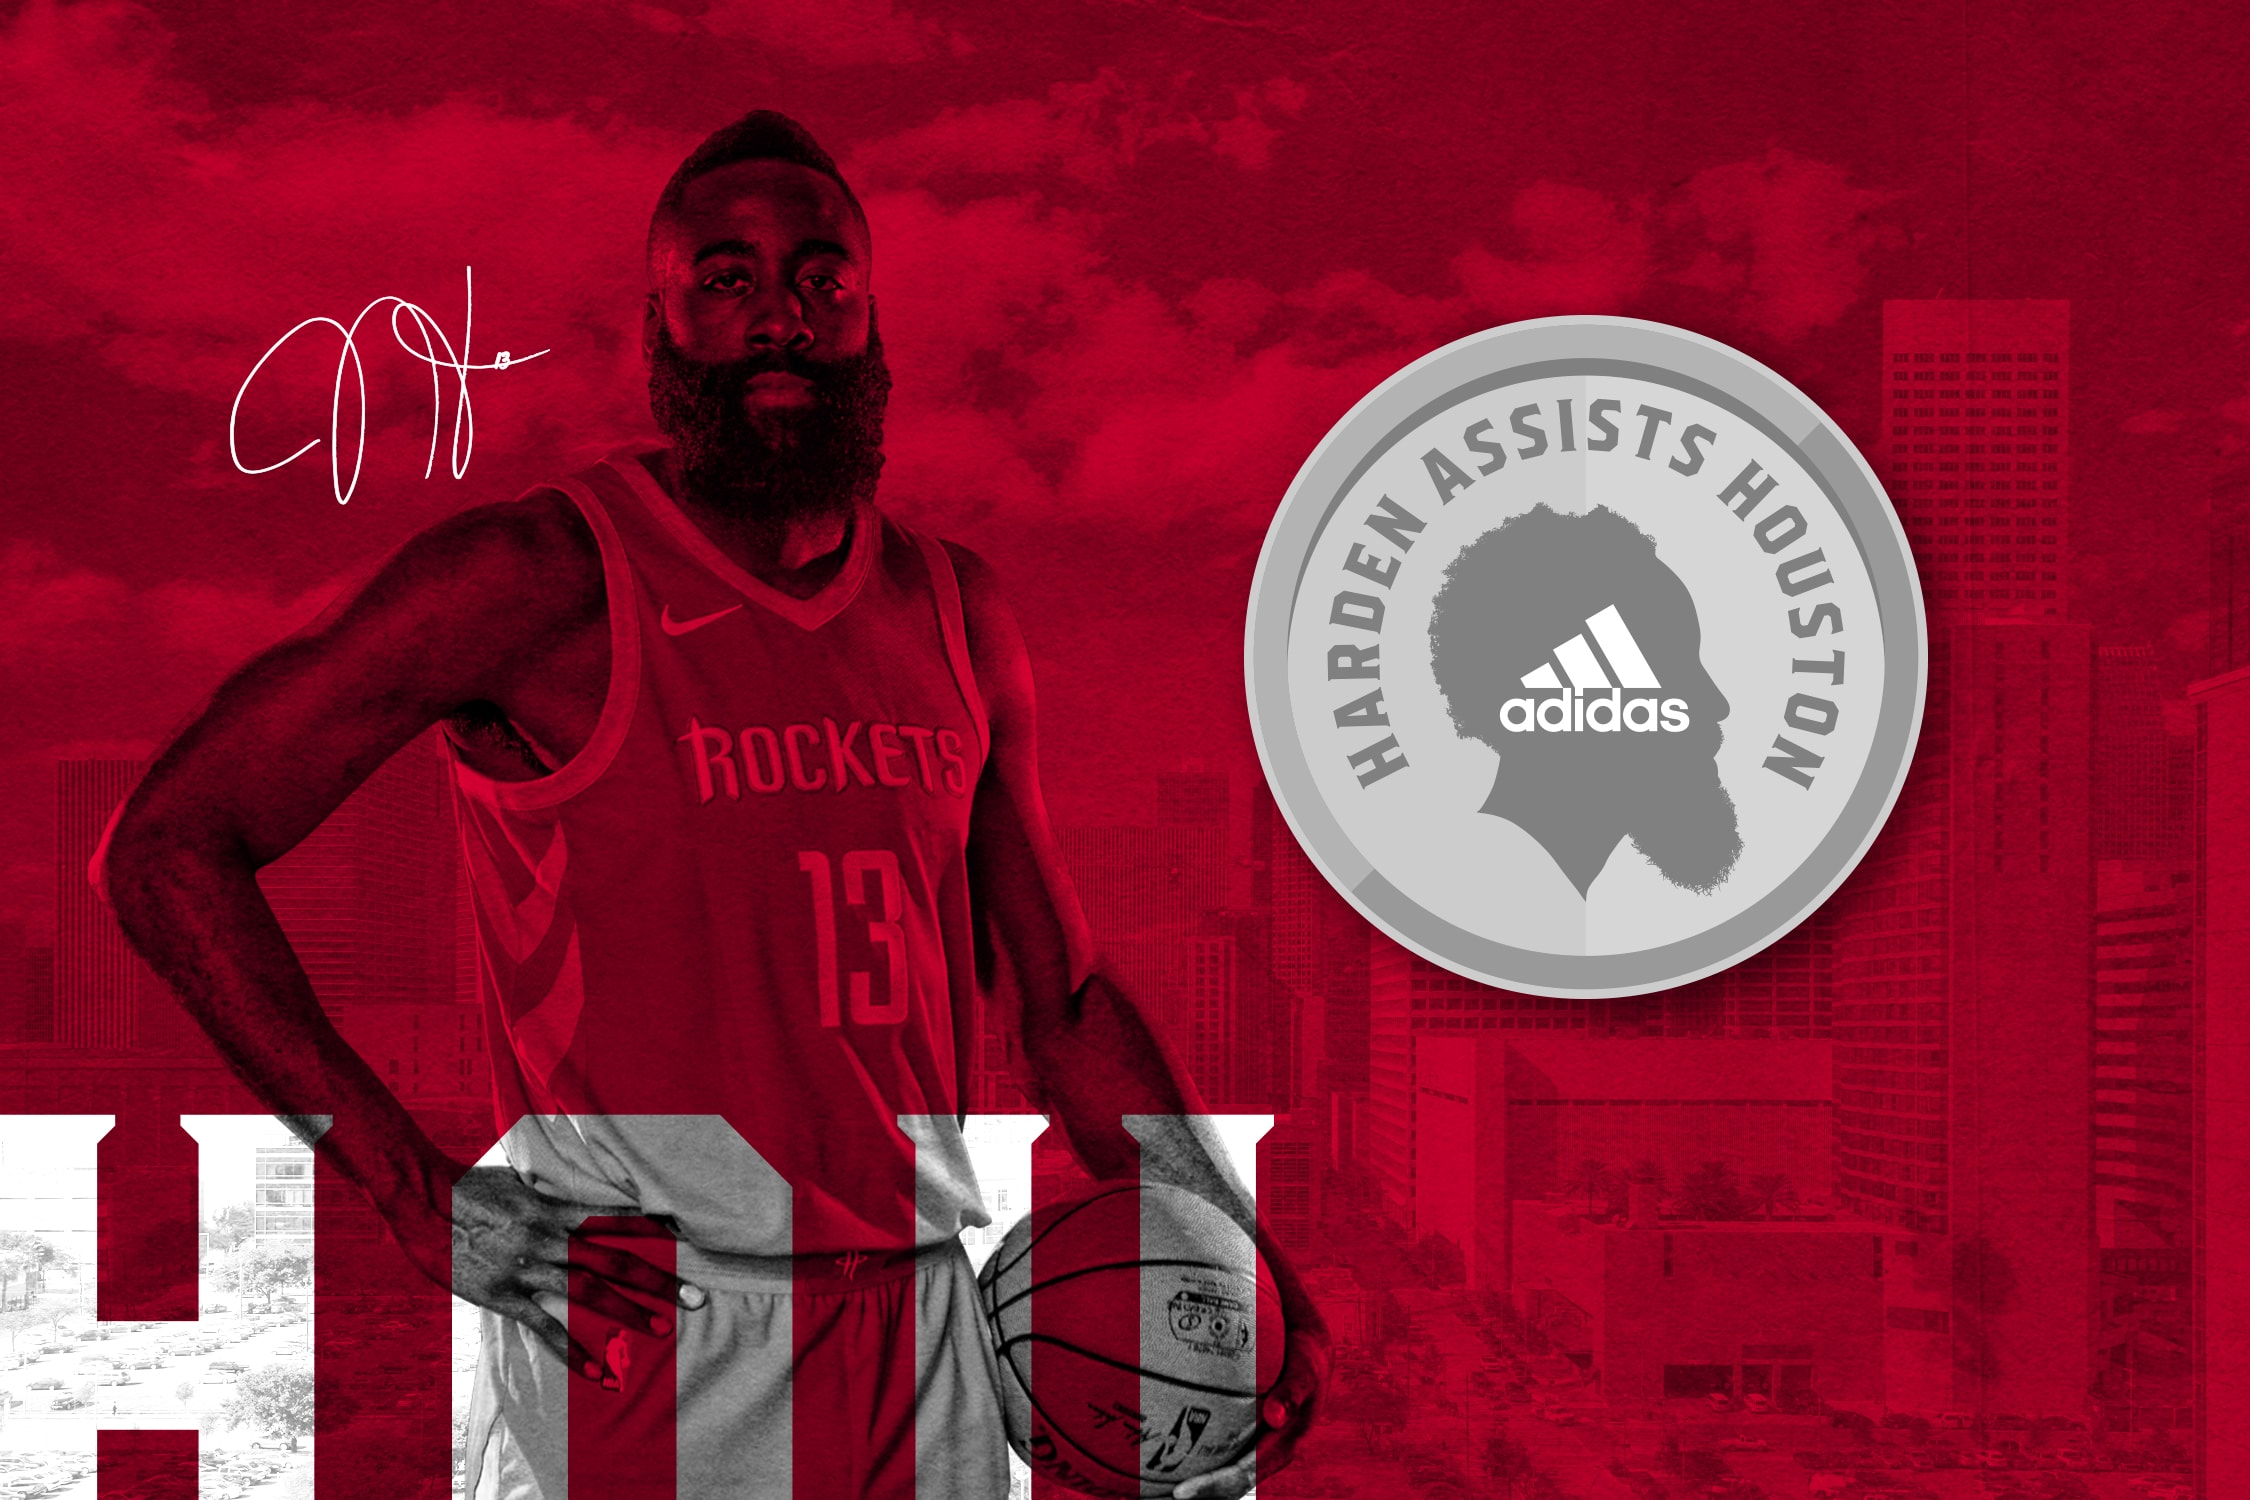 Harden and adidas Assist Houston